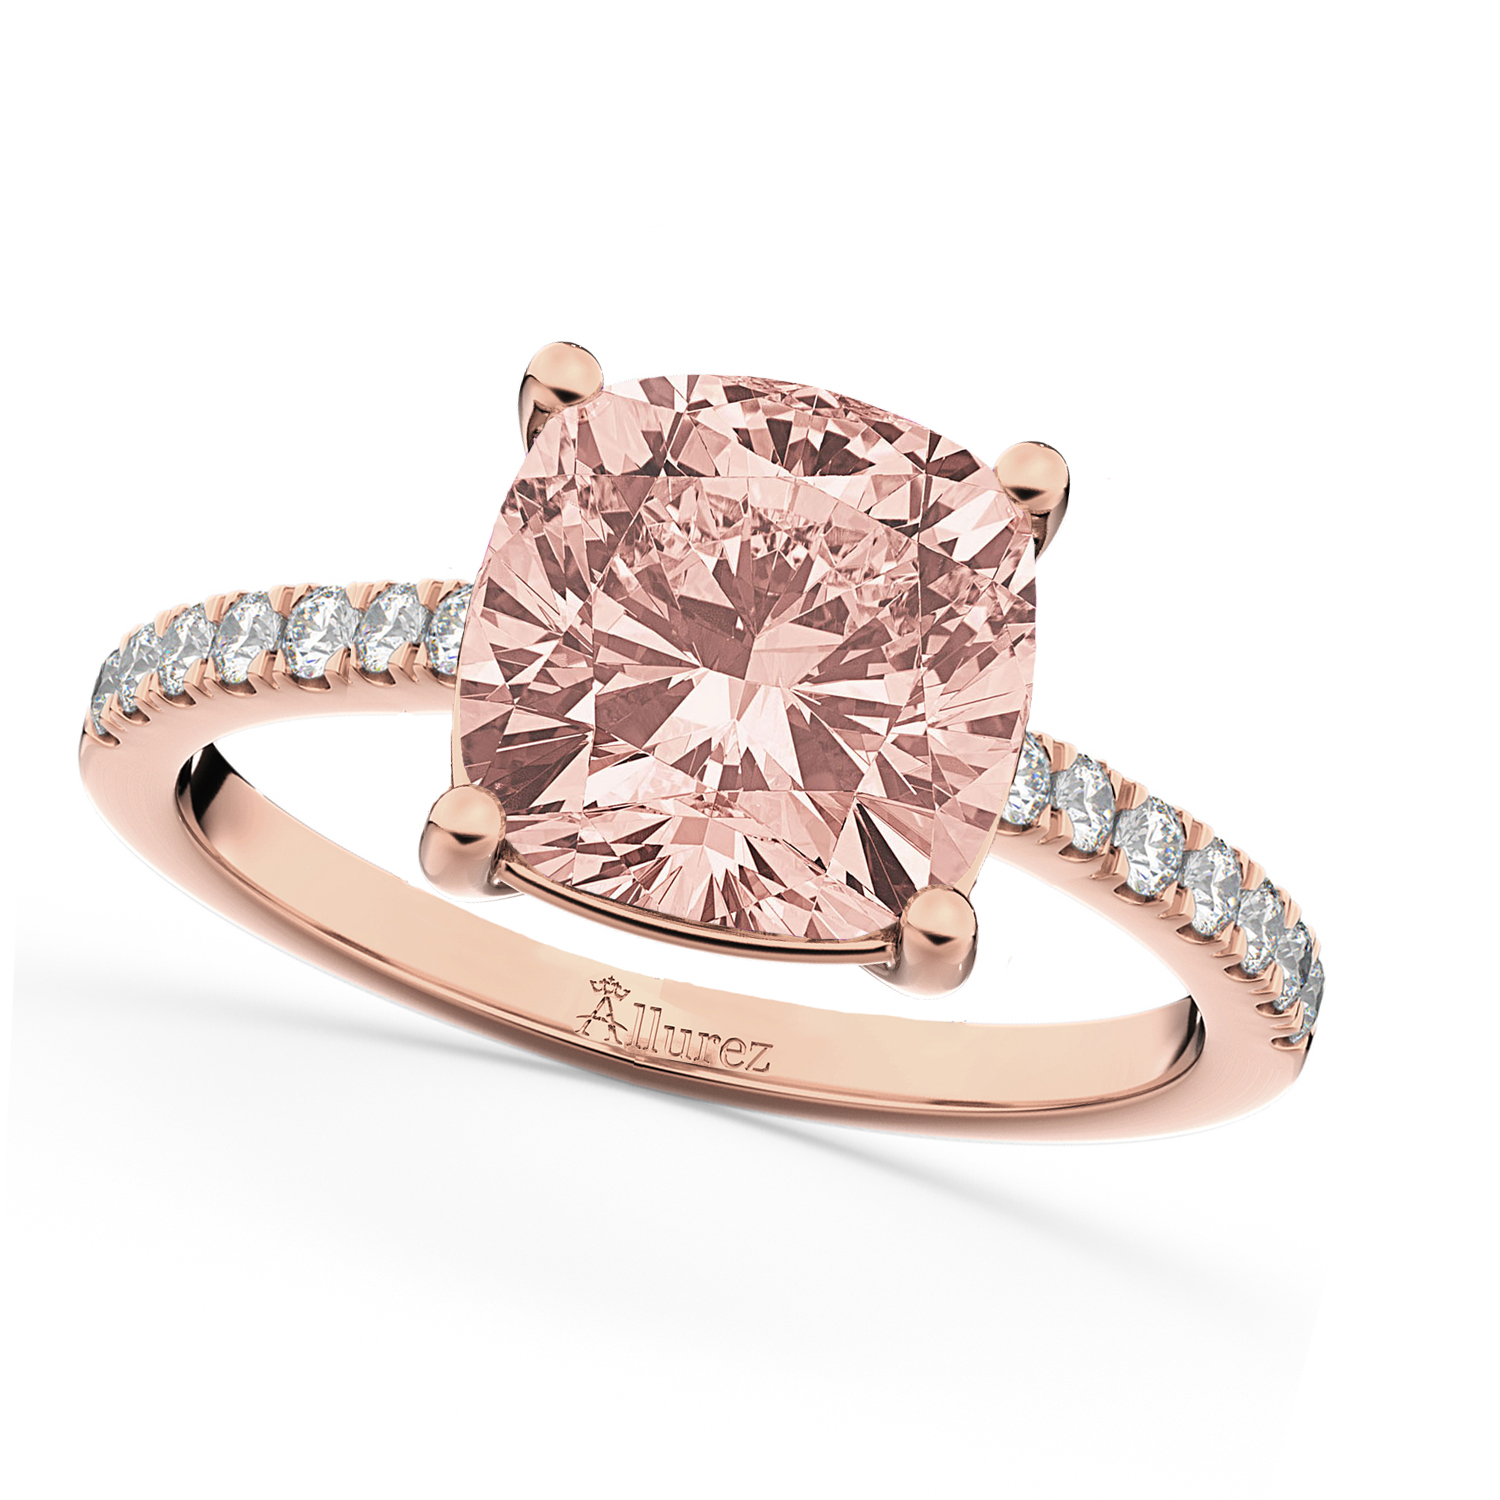 Cushion Cut Morganite & Diamond Engagement Ring 14k Rose Gold 2.81ct ...